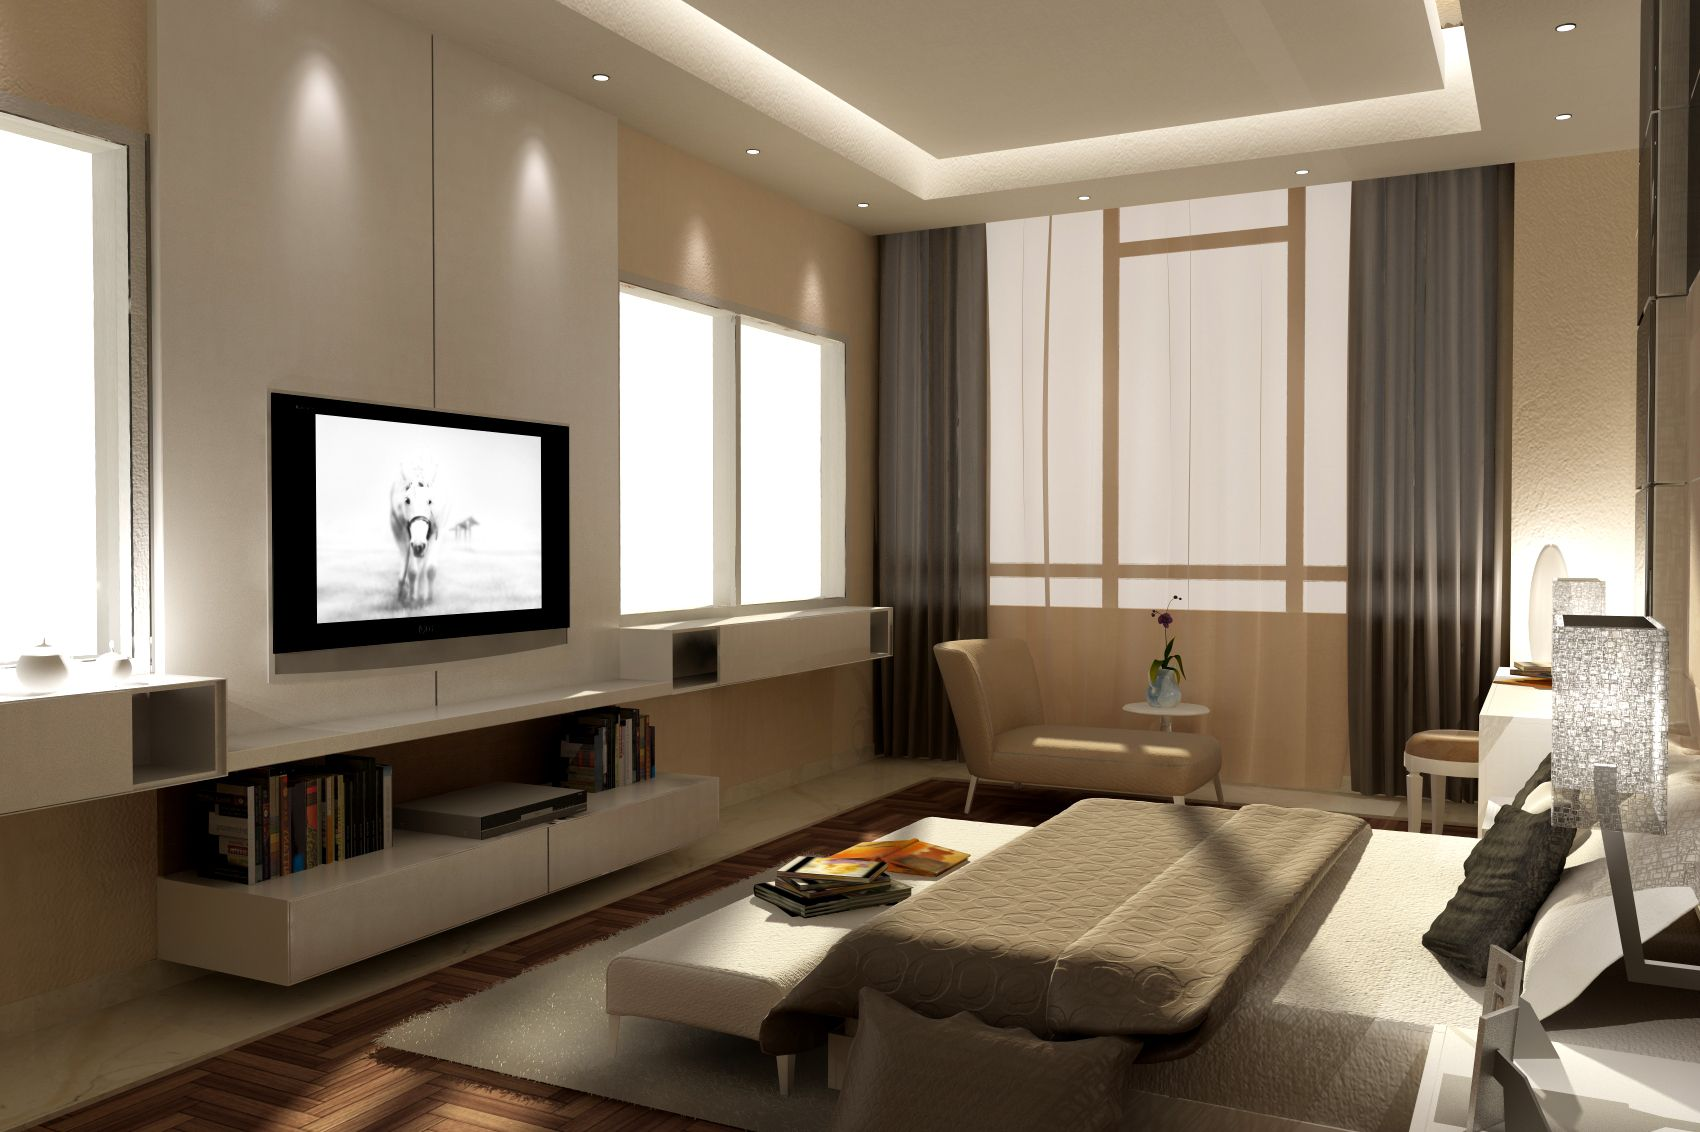 Bedroom modern bedroom interior design 3d max 3d for Interior design images bedroom